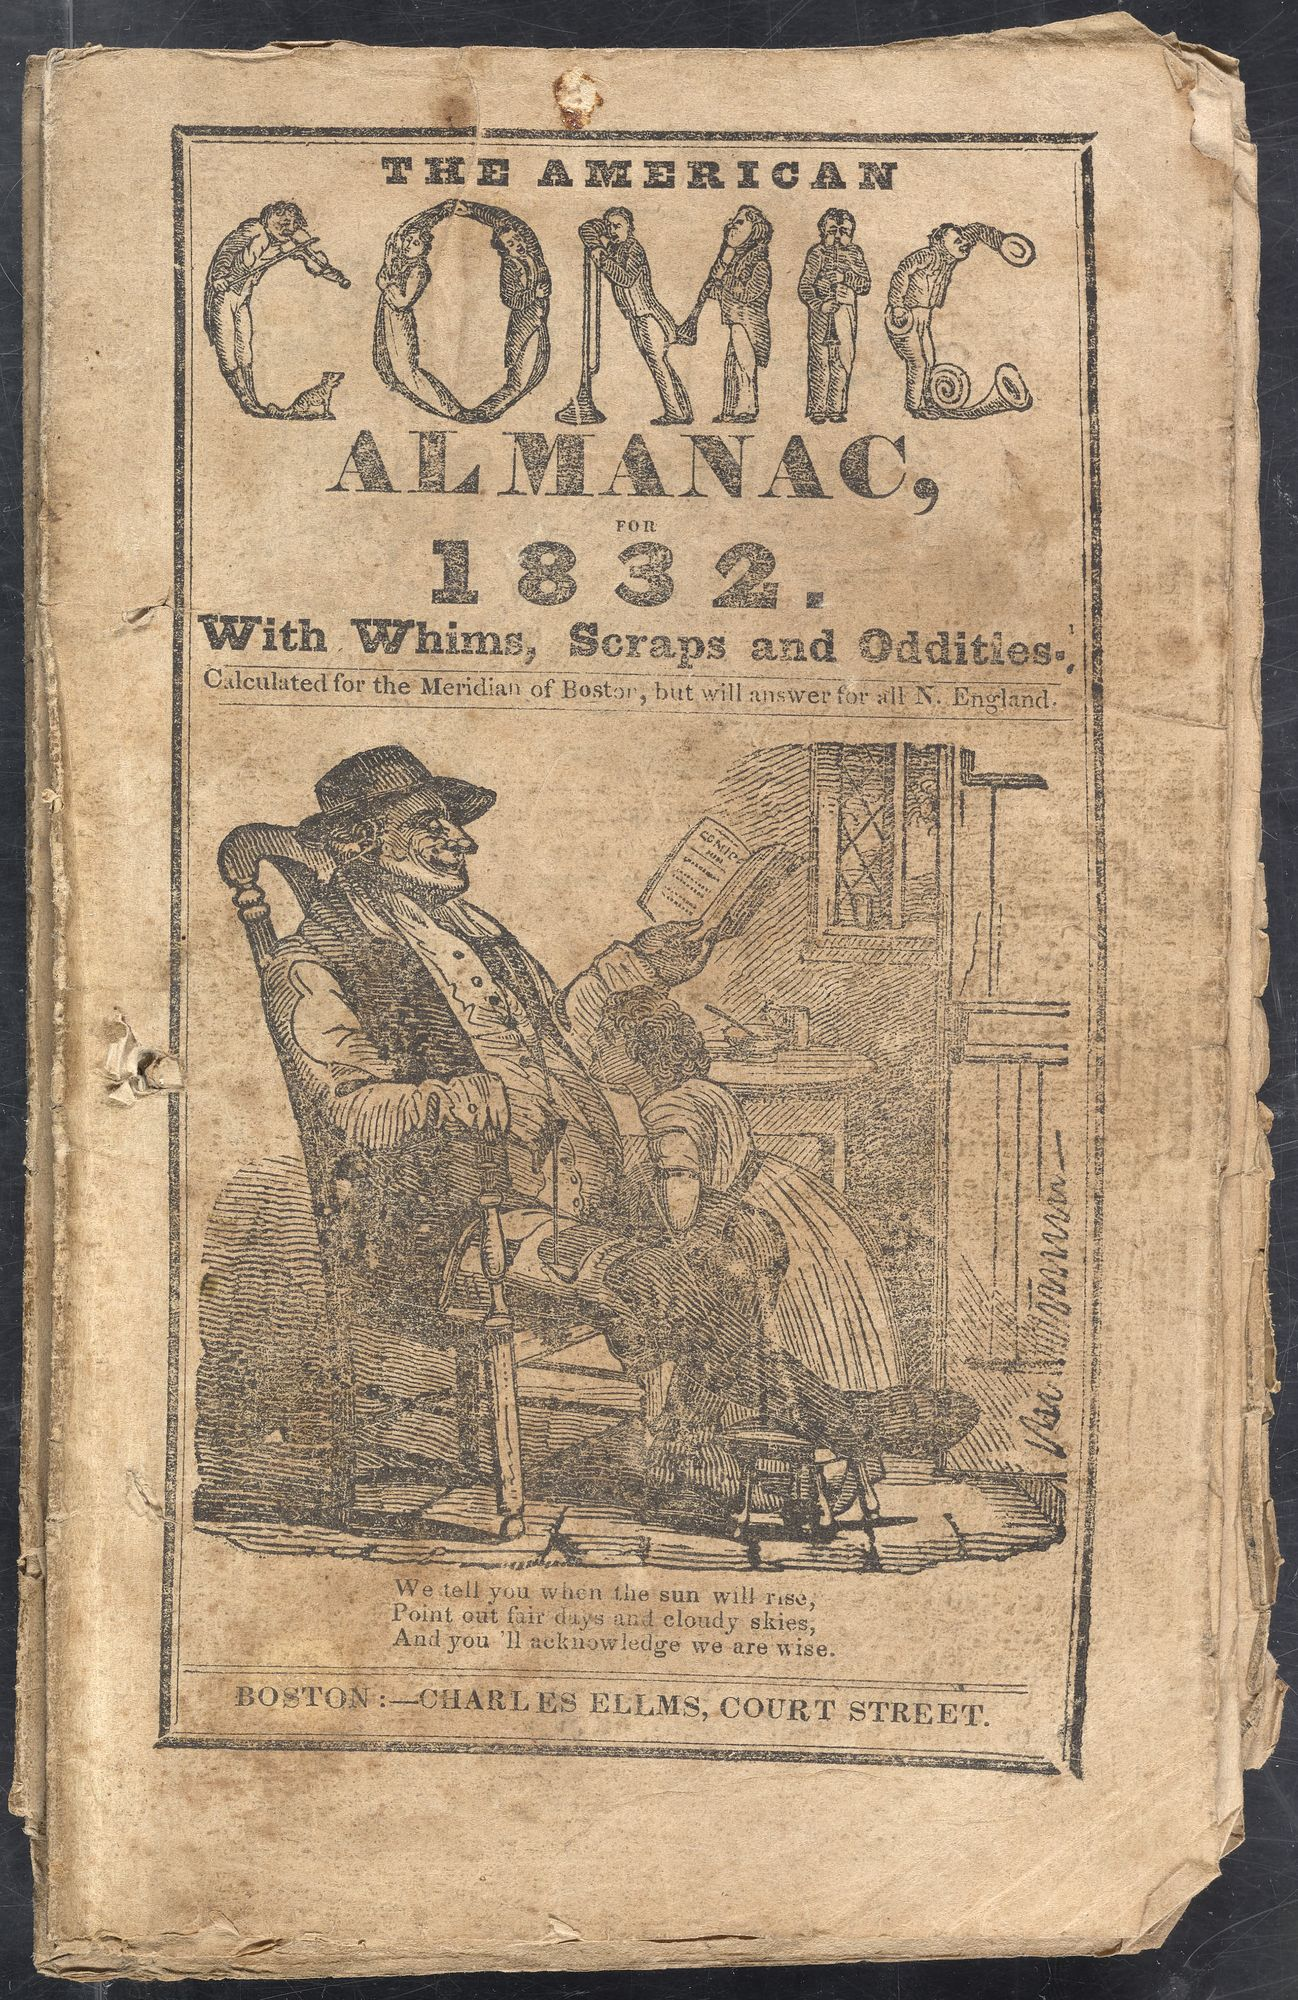 cover of The American Comic Almanac for 1832